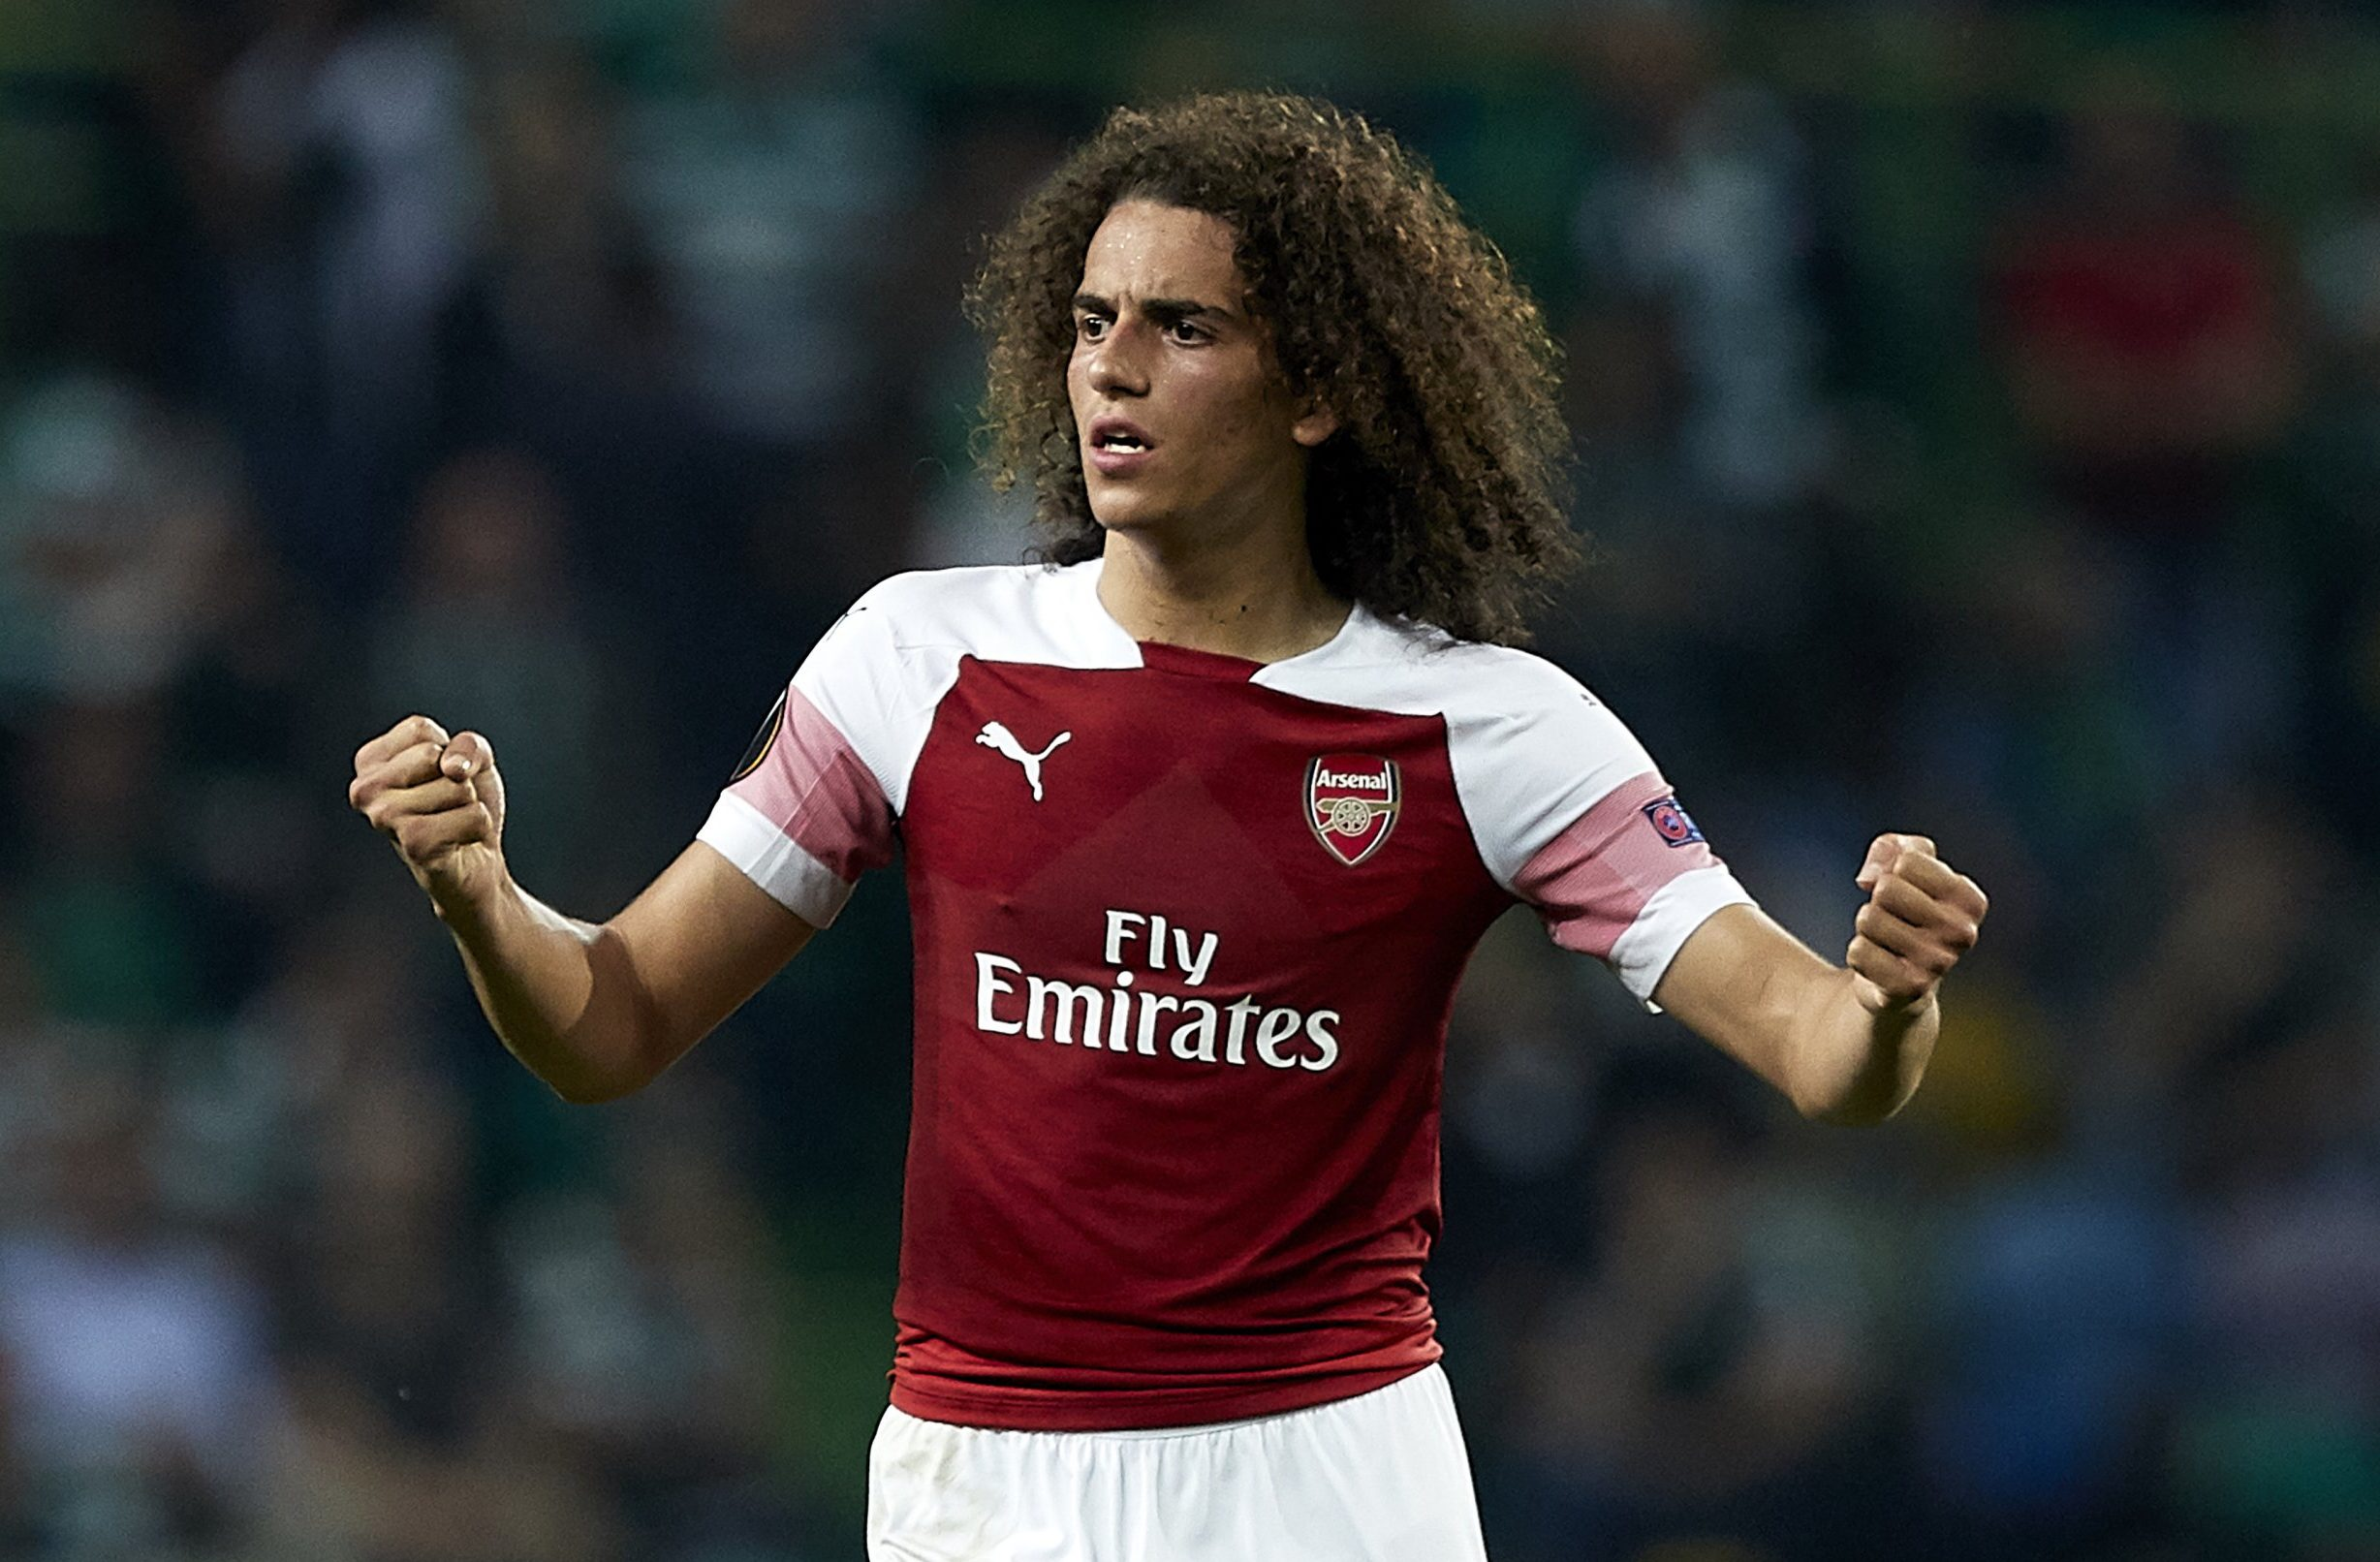 Matteo Guendouzi suspended for Arsenal's clash with Liverpool after red card against Blackpool